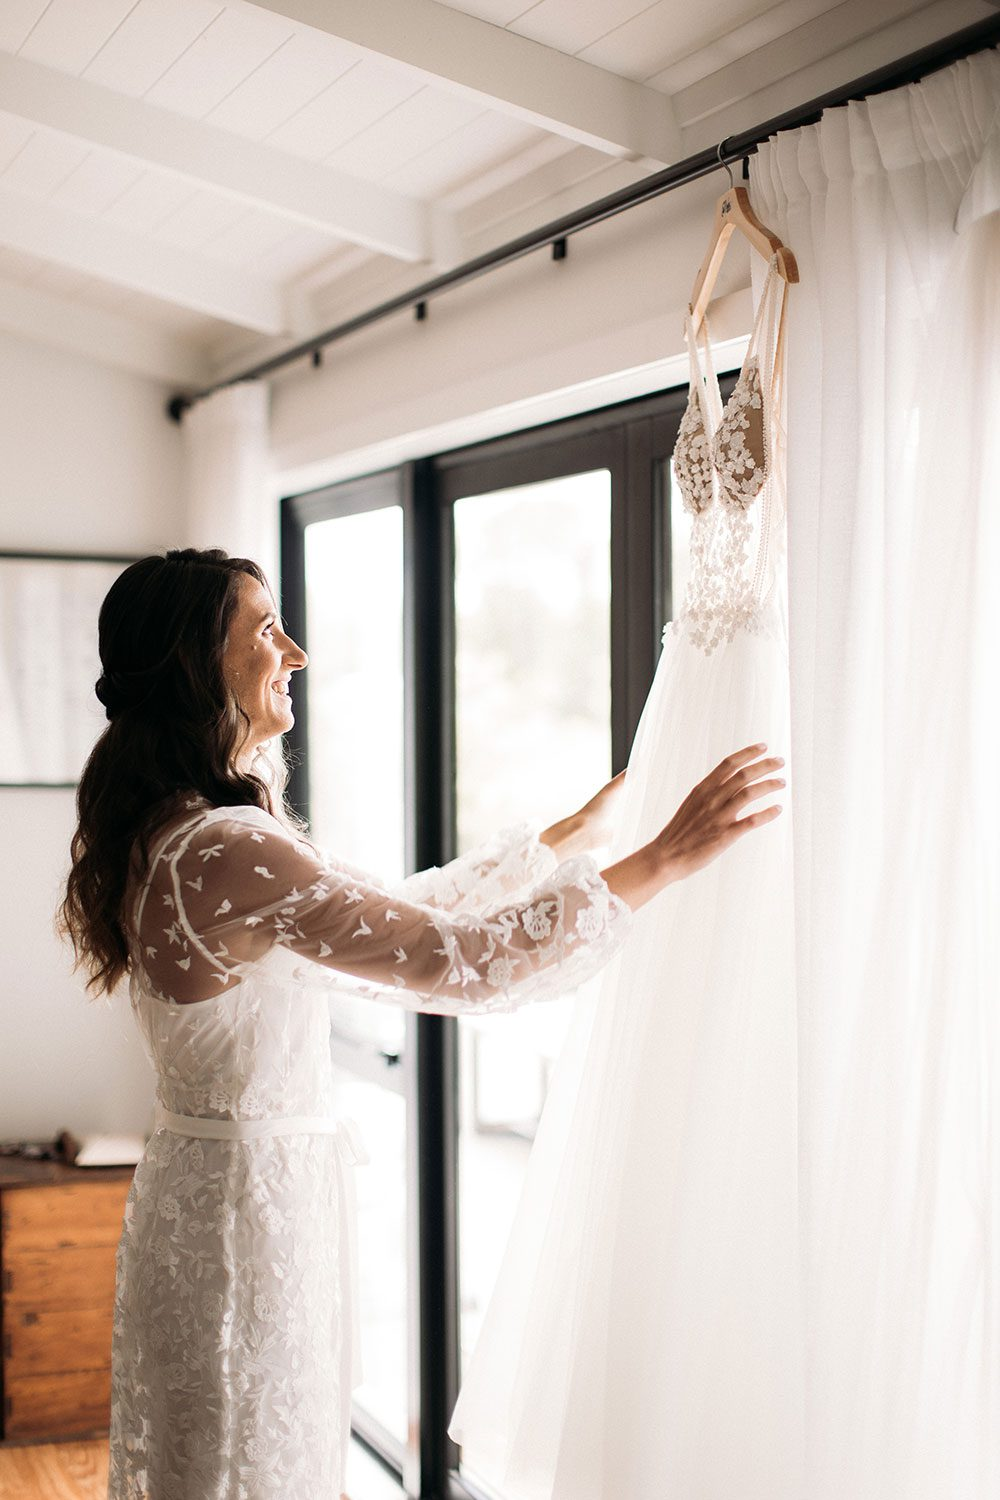 Vinka bridal boutique Isabelle tulle gown with sheer v neck bodice and beaded lace - with bride at window